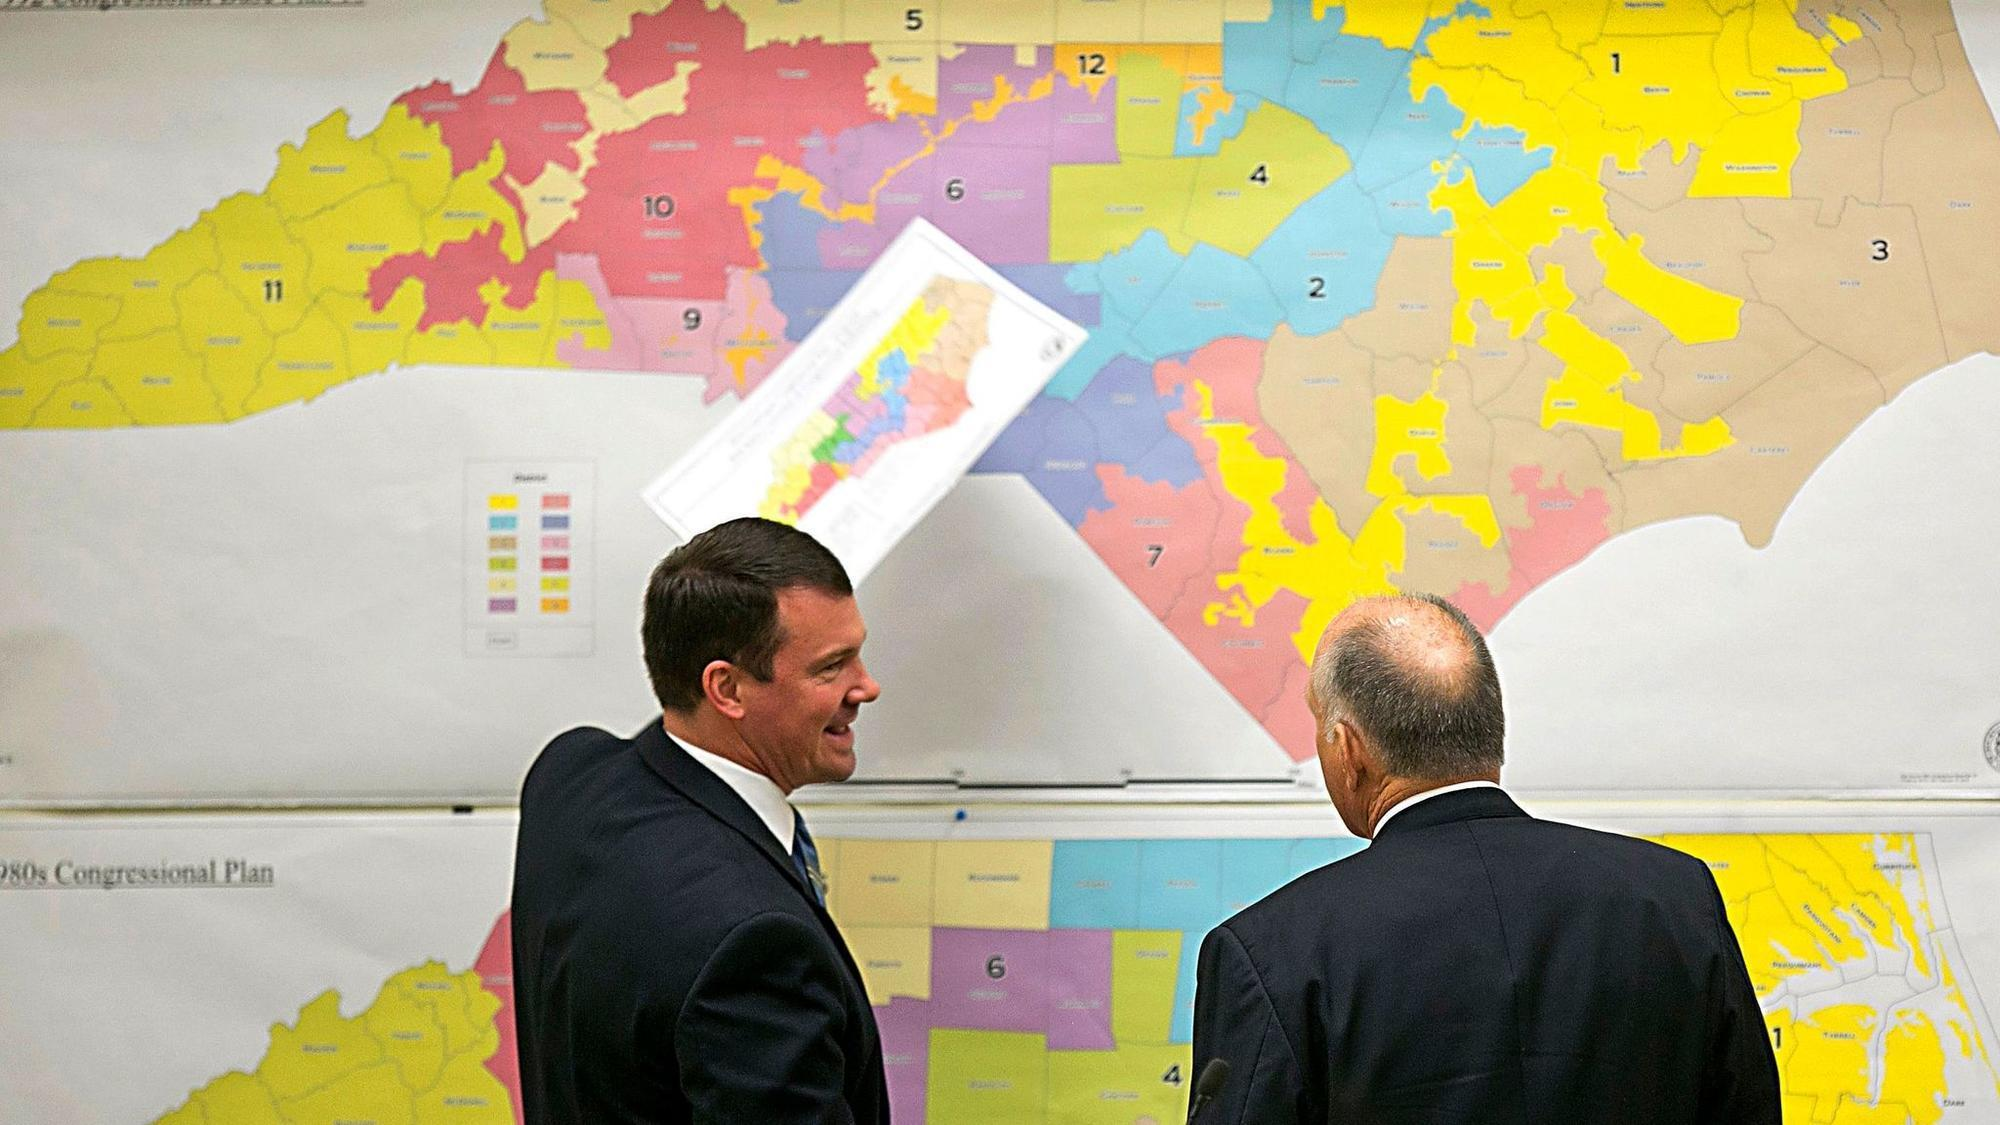 Gerrymandering concerns extend beyond PA as legislatures debate how to make elections fair